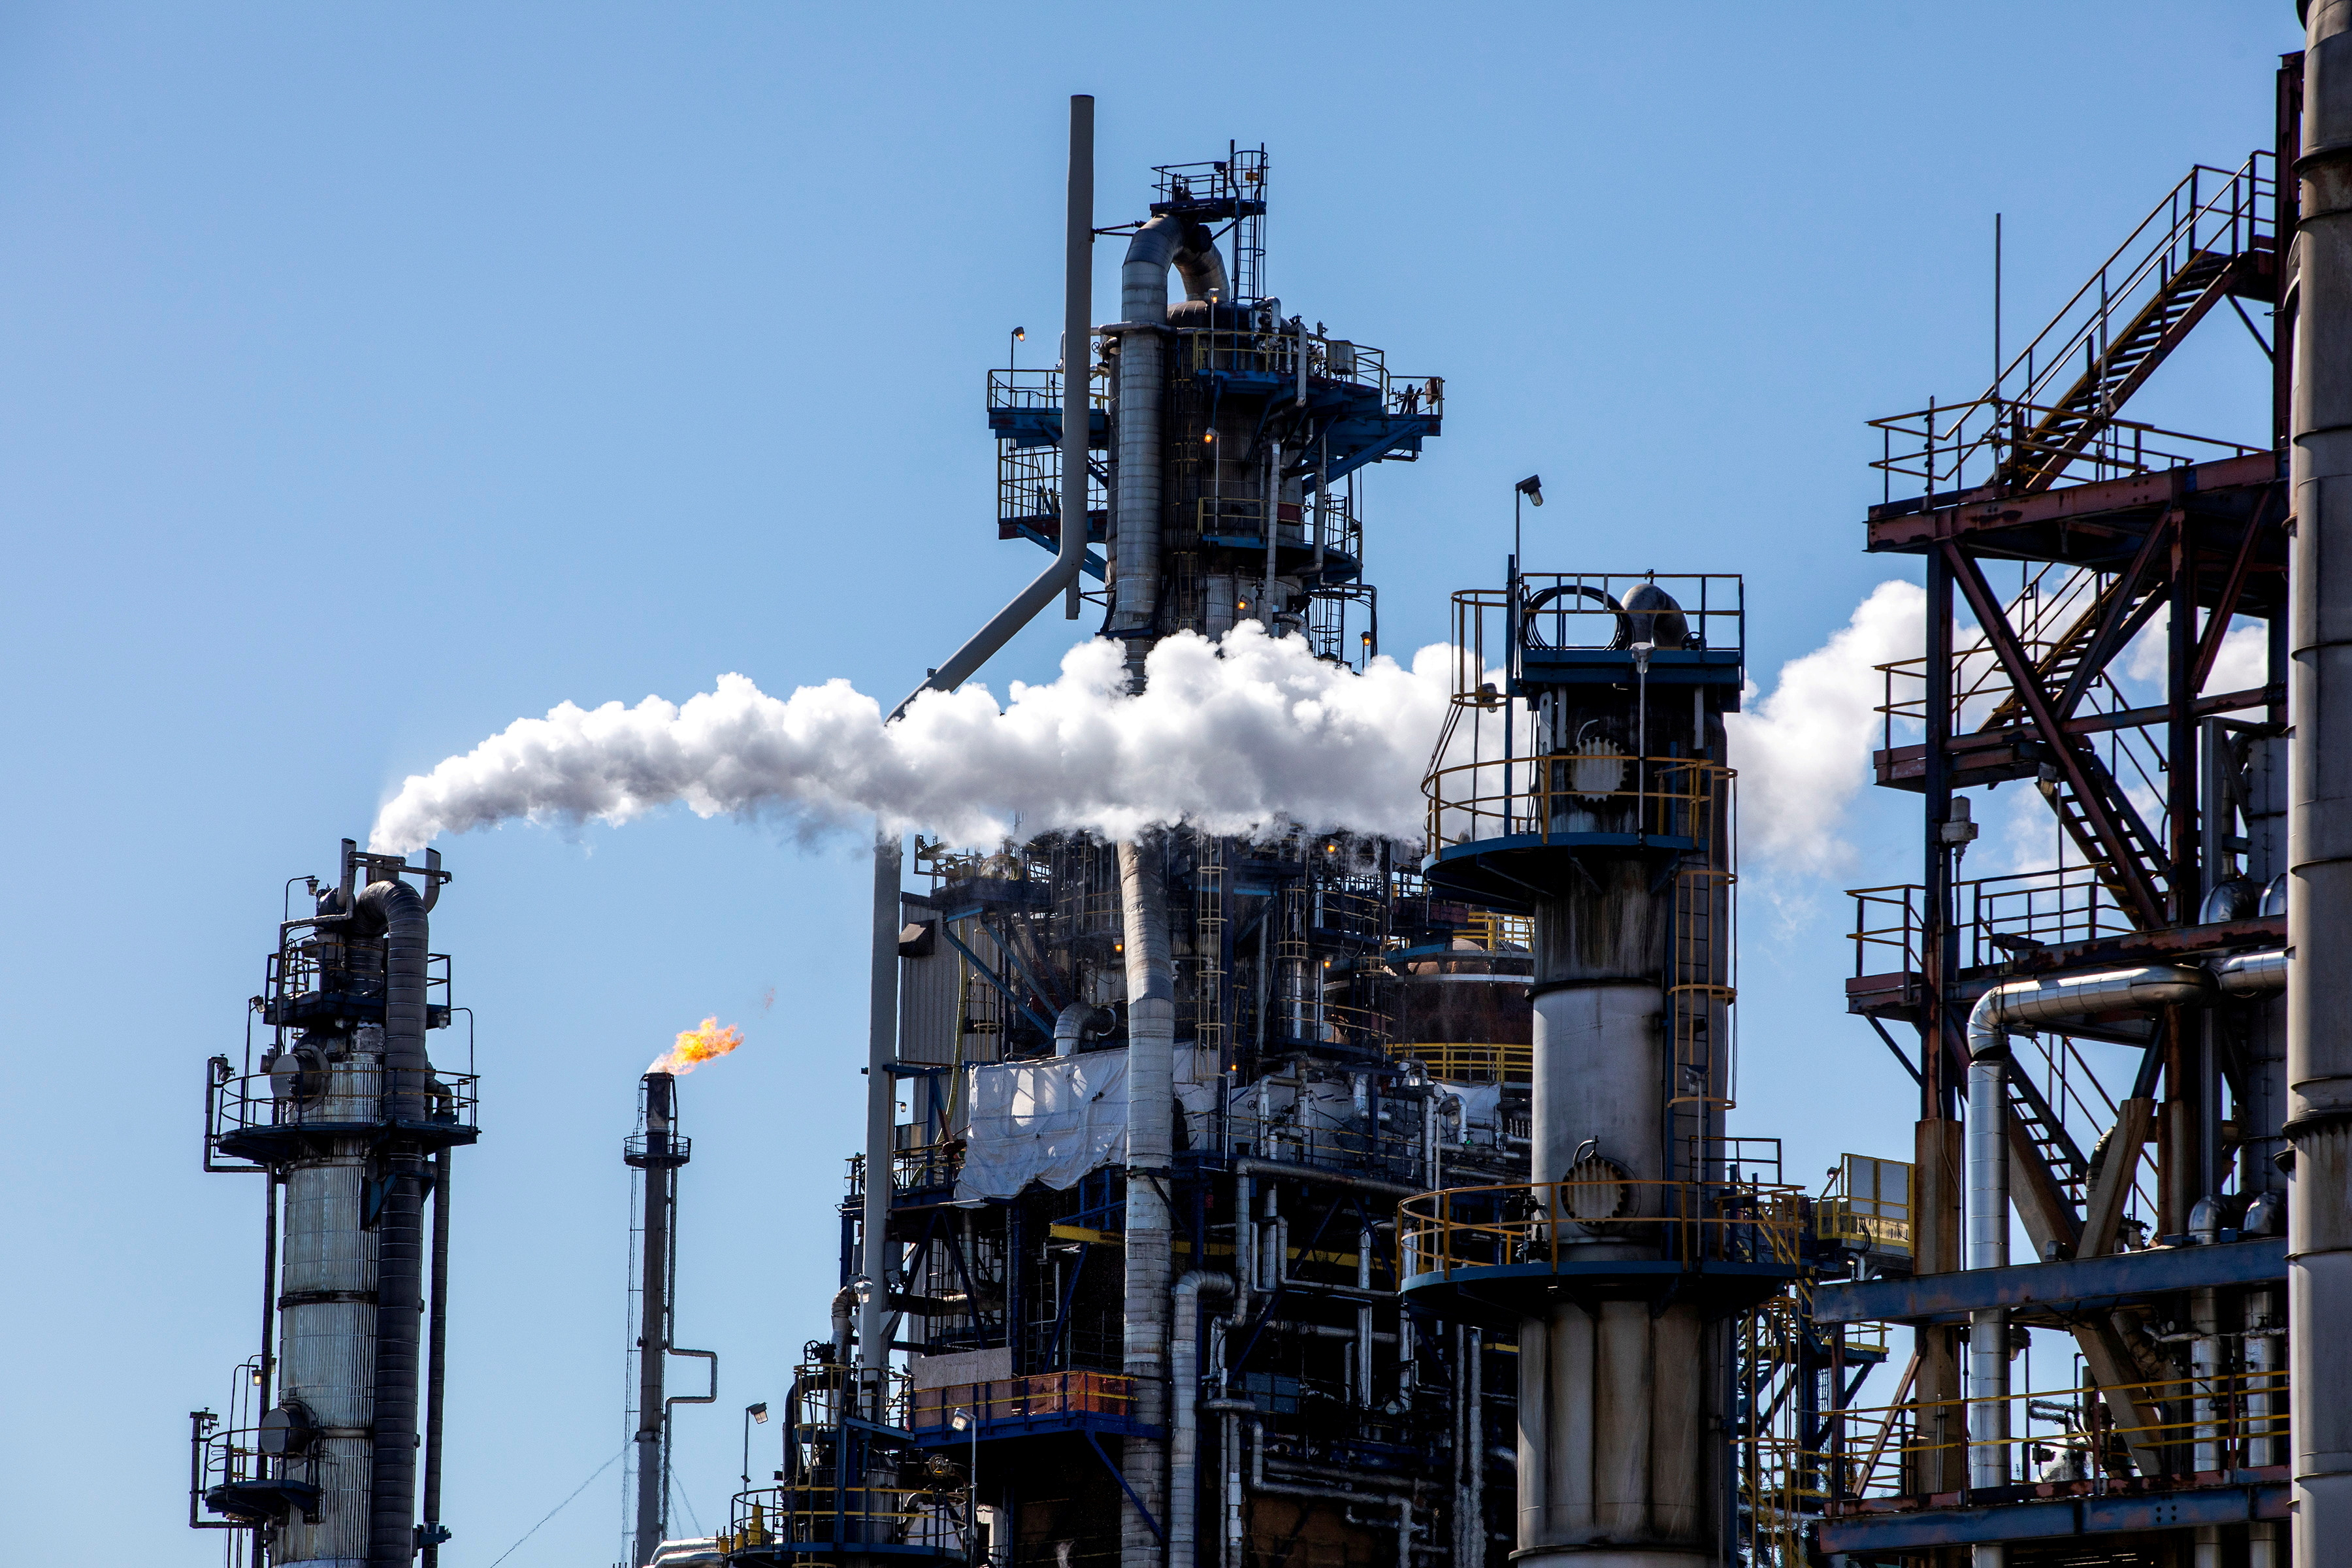 General view of the Imperial Oil refinery, located near Enbridge's Line 5 pipeline, which Michigan Governor Gretchen Whitmer ordered shut down in May 2021, in Sarnia, Ontario, Canada March 20, 2021. Picture taken March 20, 2021. REUTERS/Carlos Osorio/File Photo/File Photo